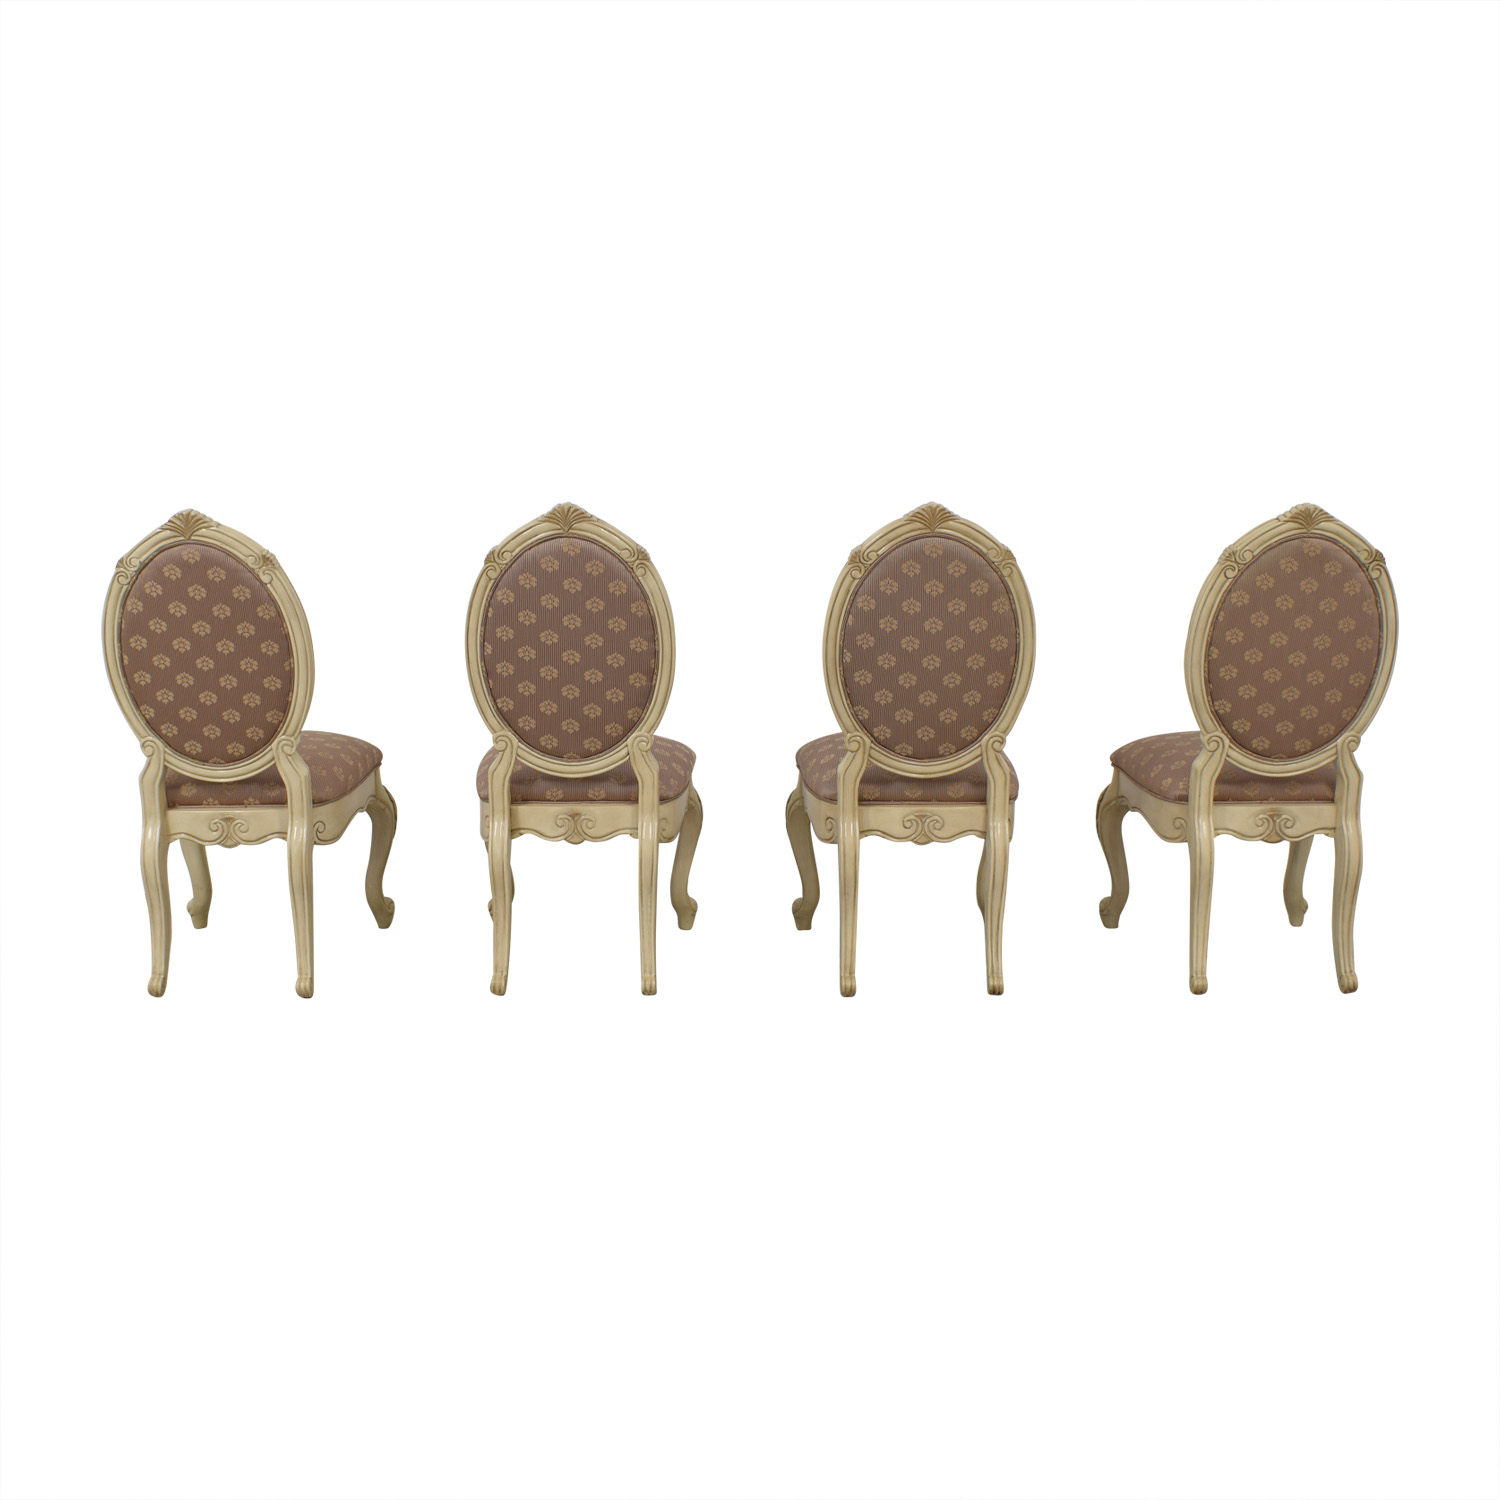 AICO AICO Michael Amini Set of Lavelle Blanc Side Chairs used